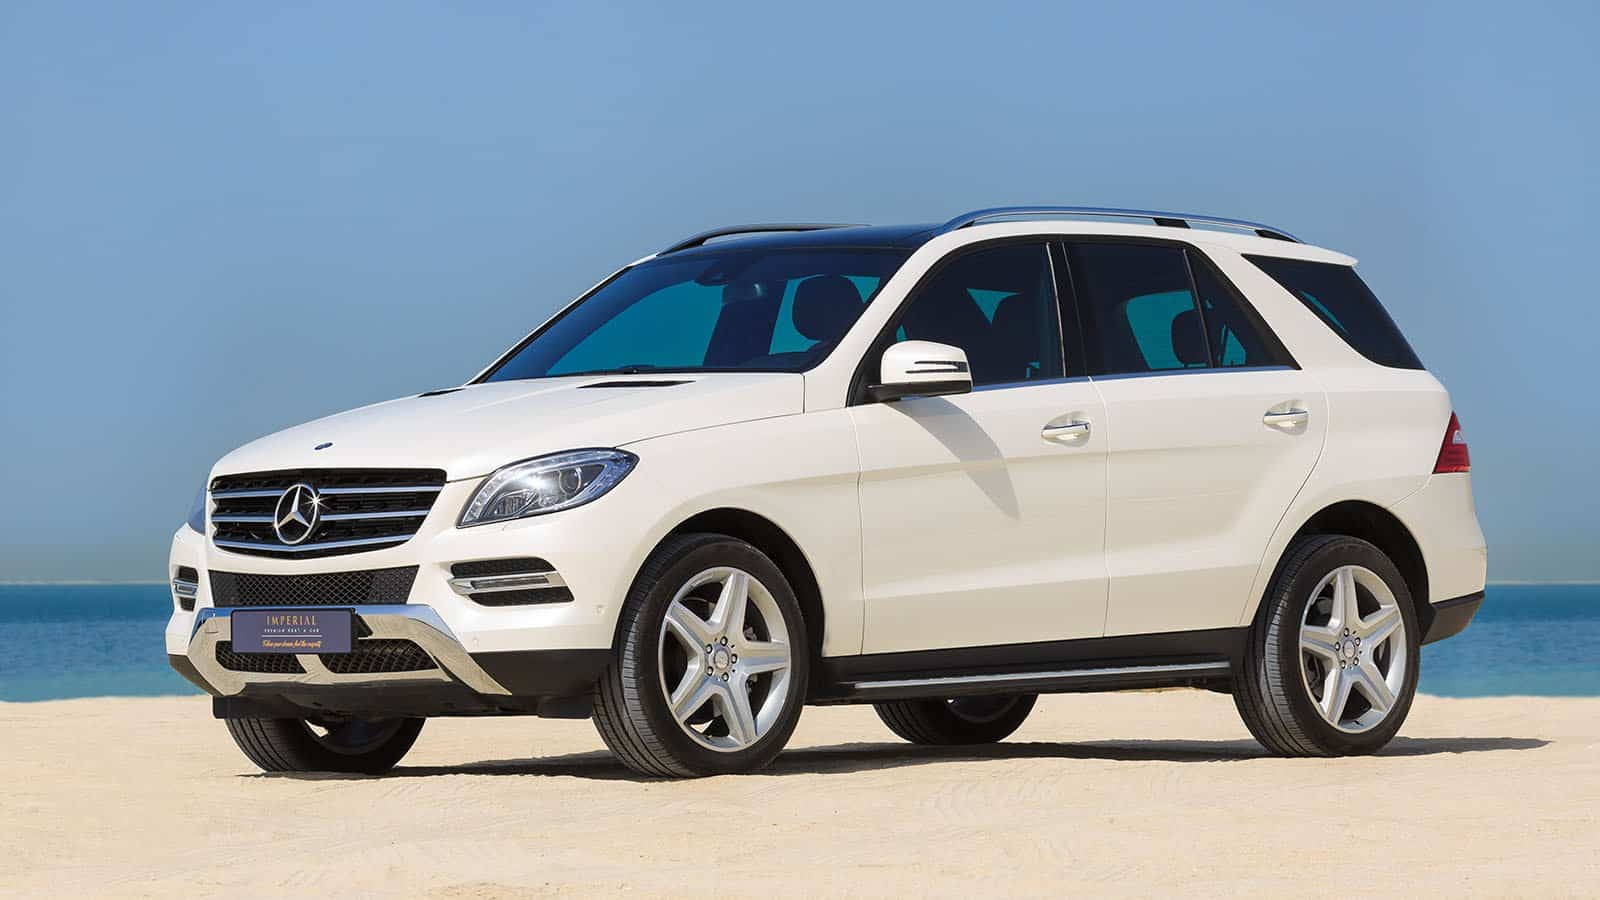 mercedes benz ml350 rent dubai imperial premium rent a car. Black Bedroom Furniture Sets. Home Design Ideas